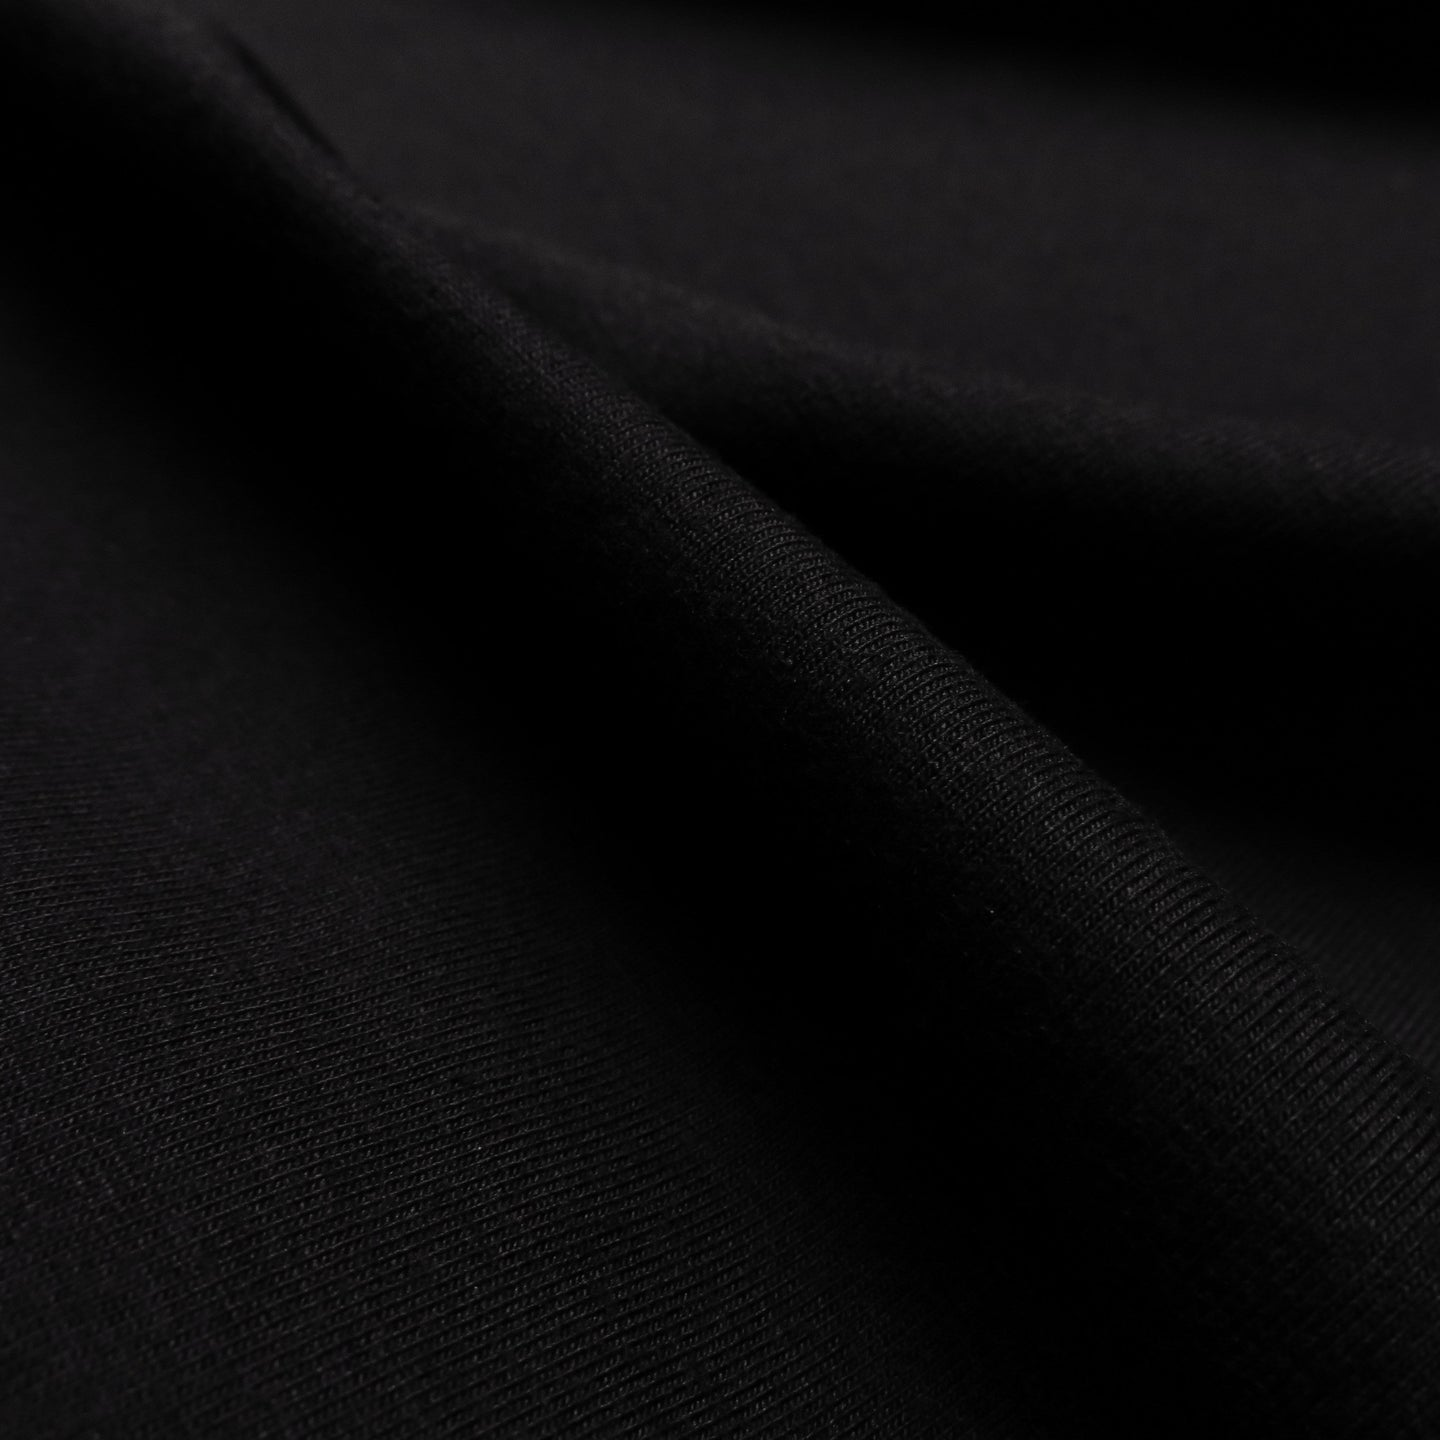 Organic cotton / elastane jersey - Black 0.5m